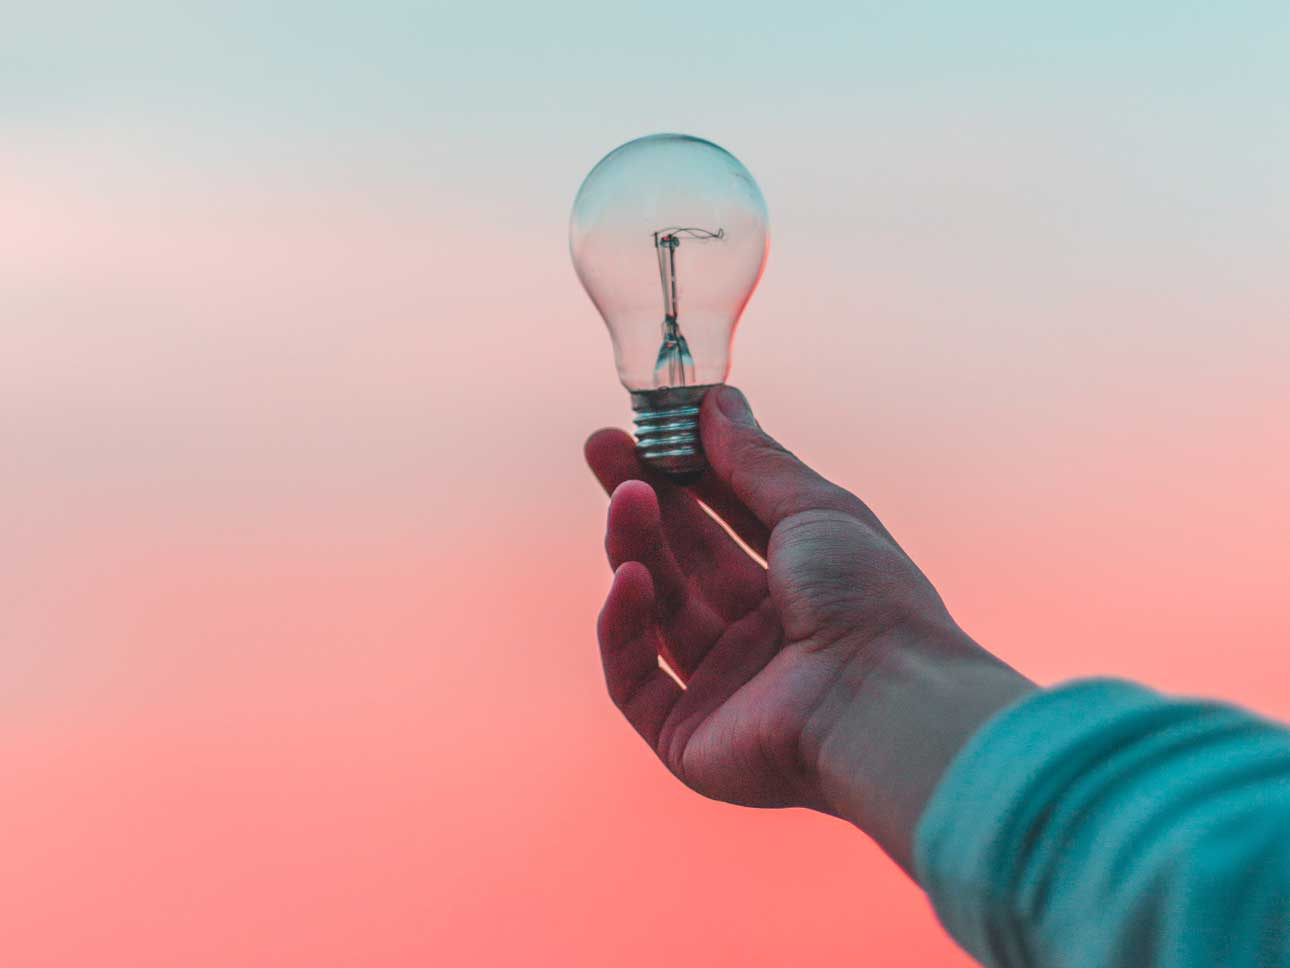 A hand holding a light bulb in front of a sunset.